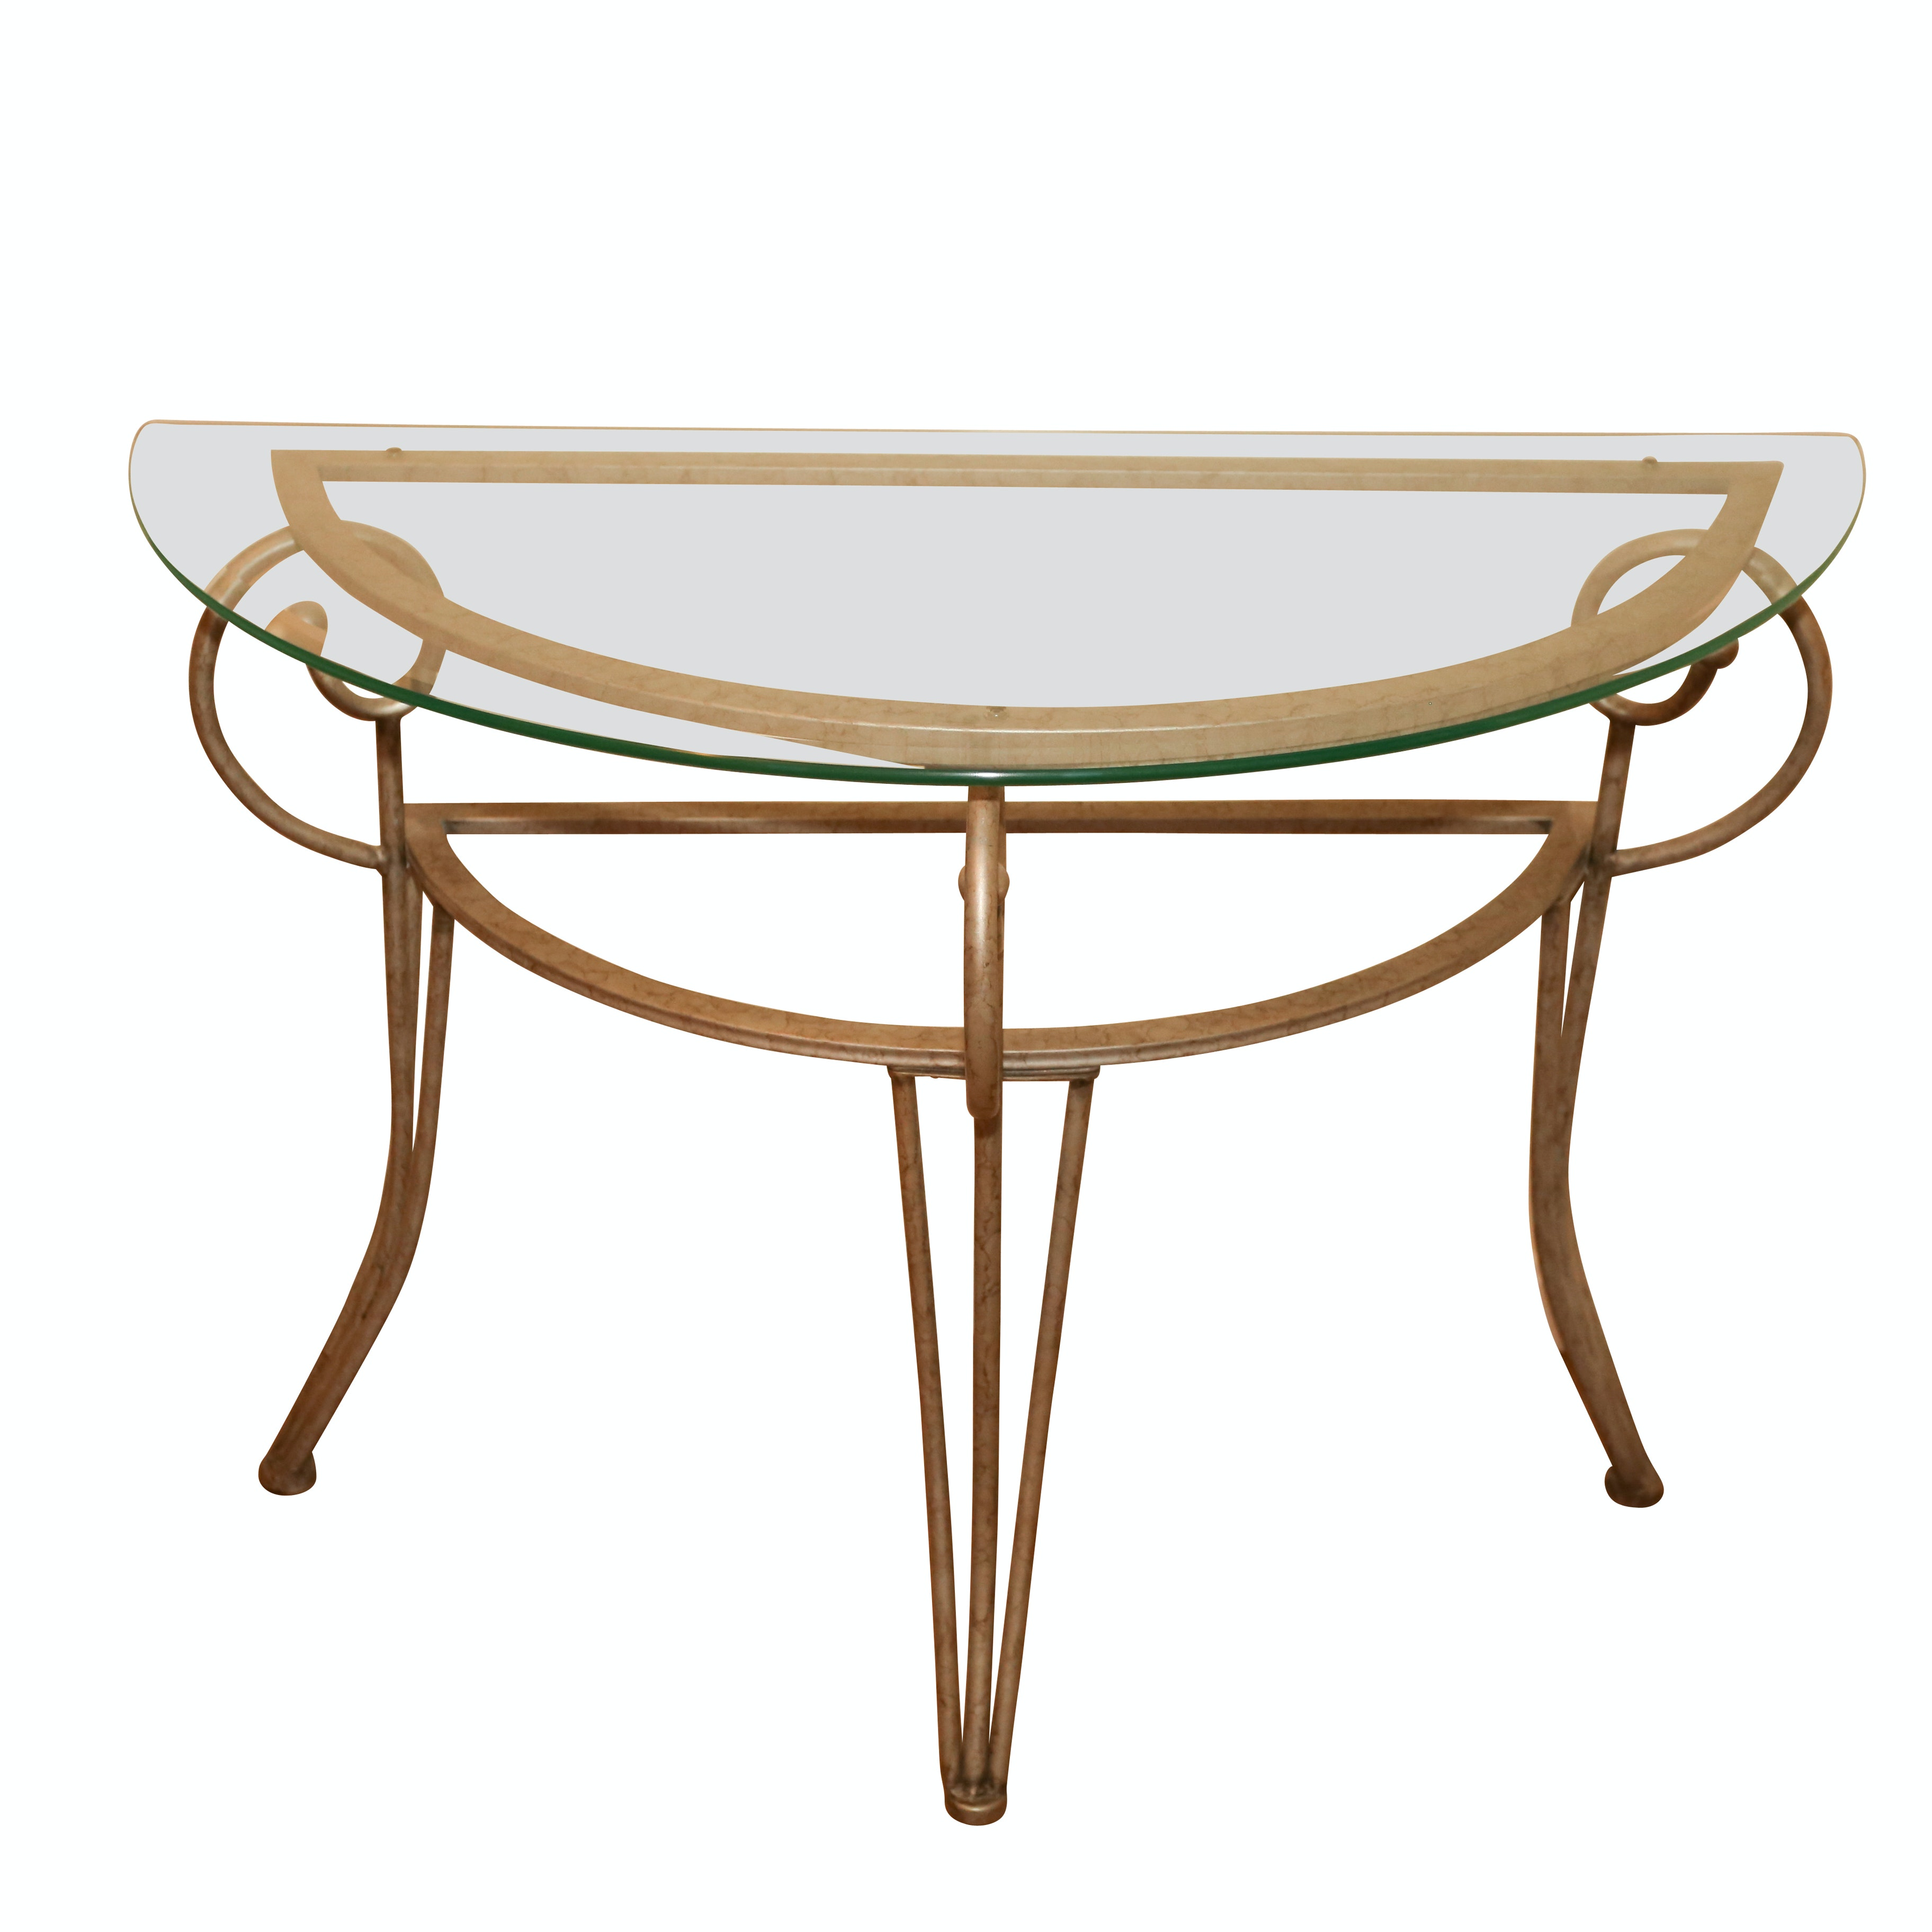 Hollywood Regency Style Painted Metal and Glass Demilune Entry Table, 21st C.